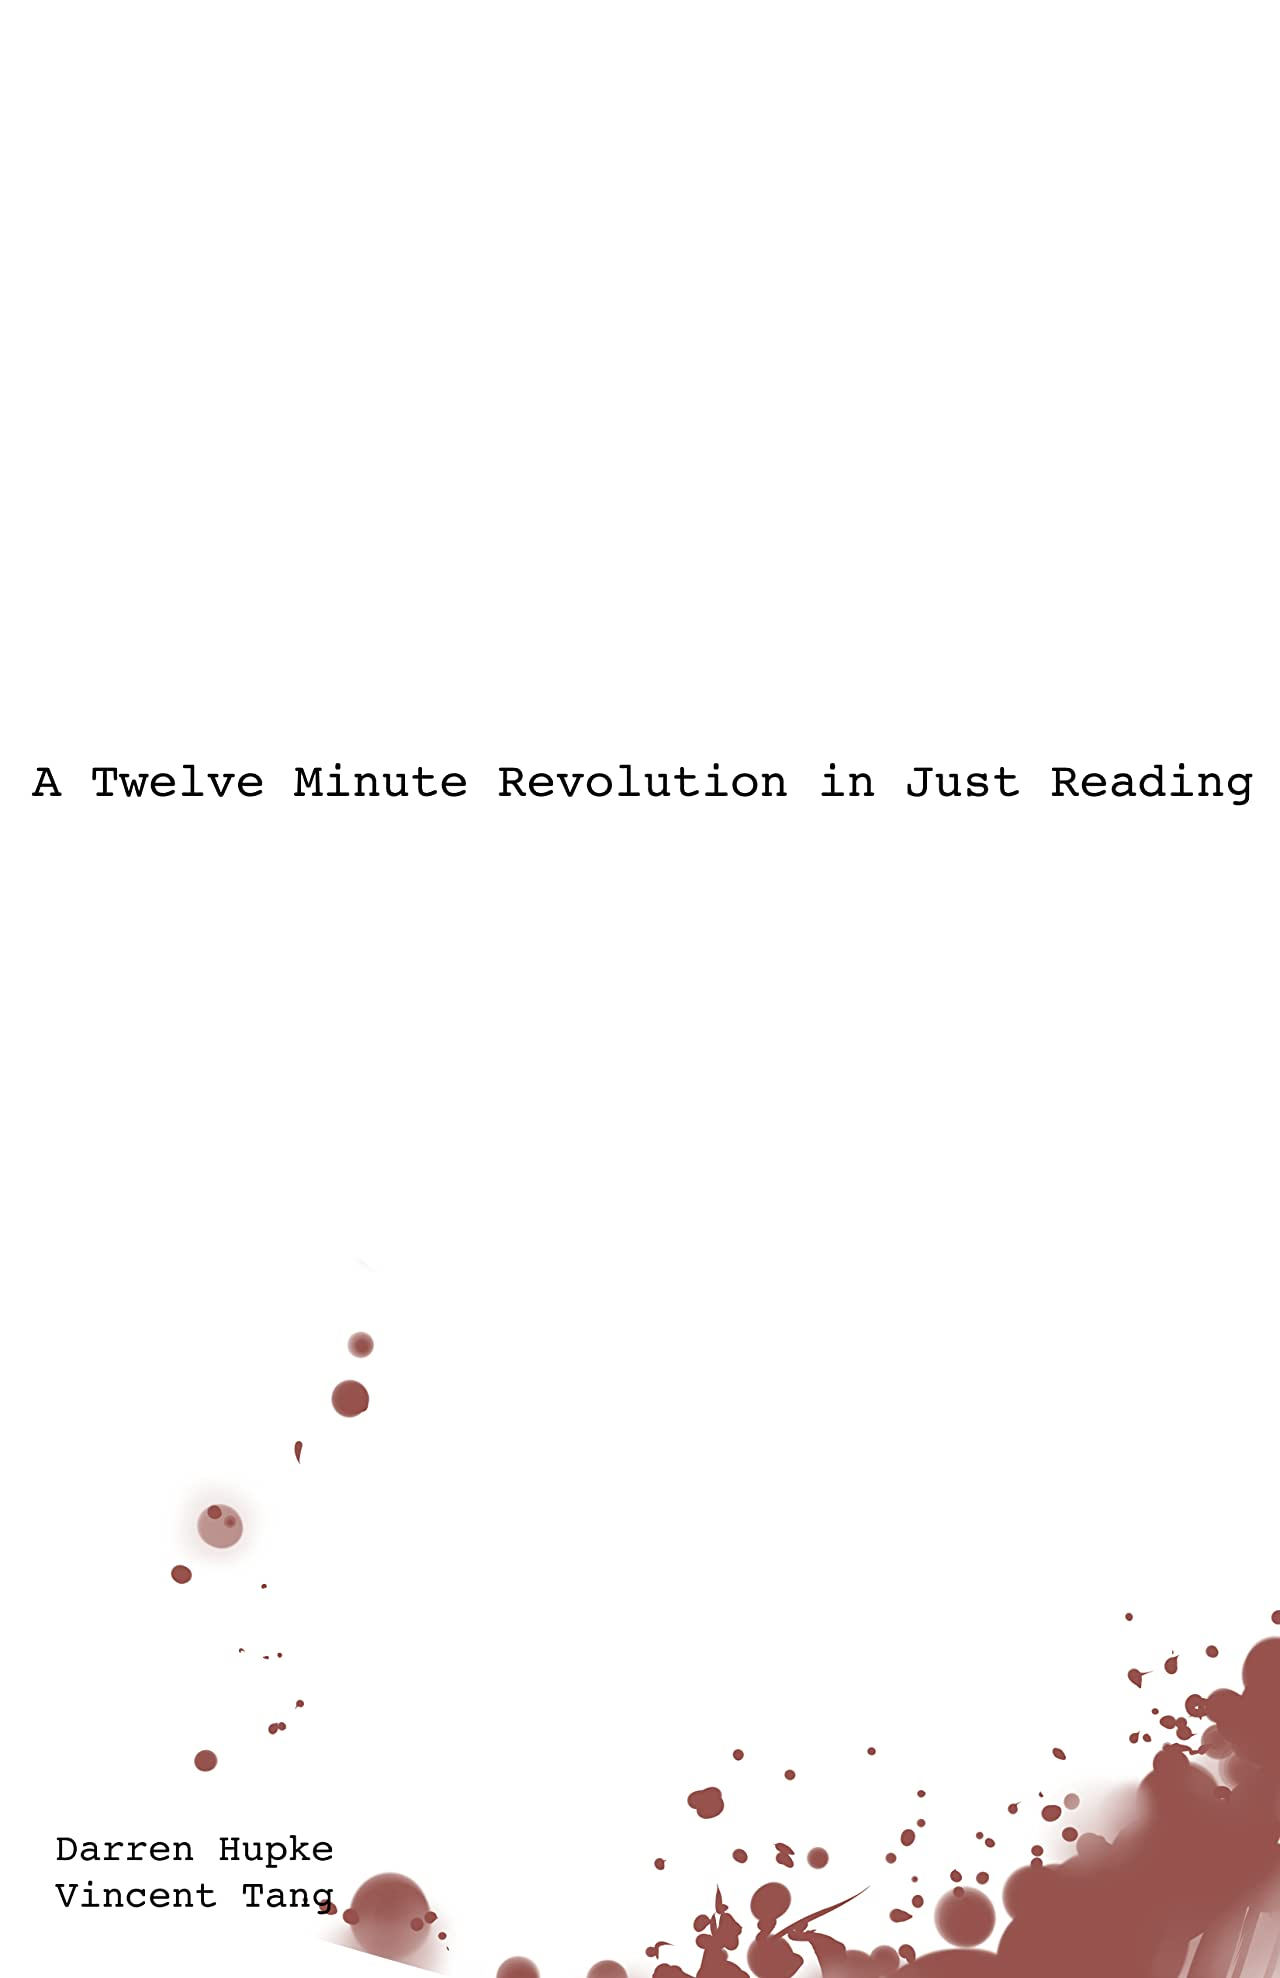 A Twelve Minute Revolution in Just Reading